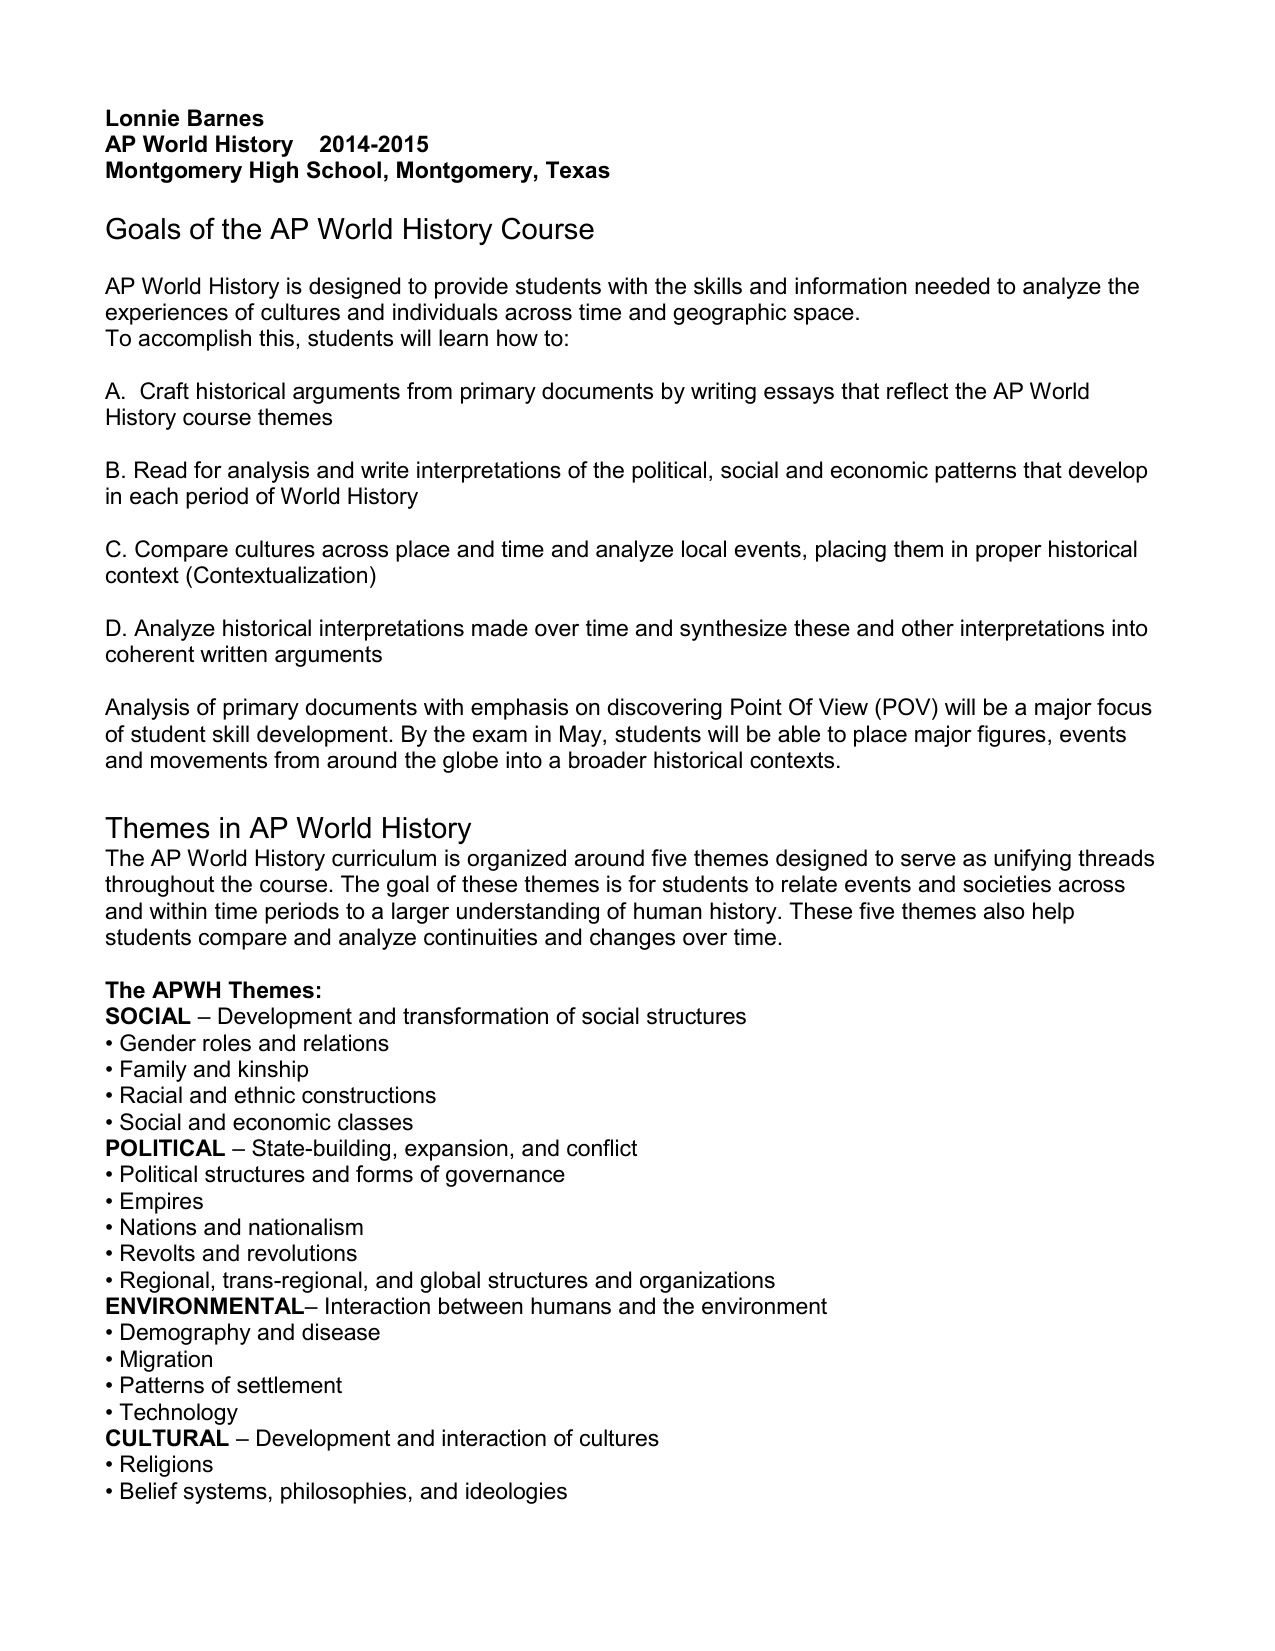 World history essay questions and answers